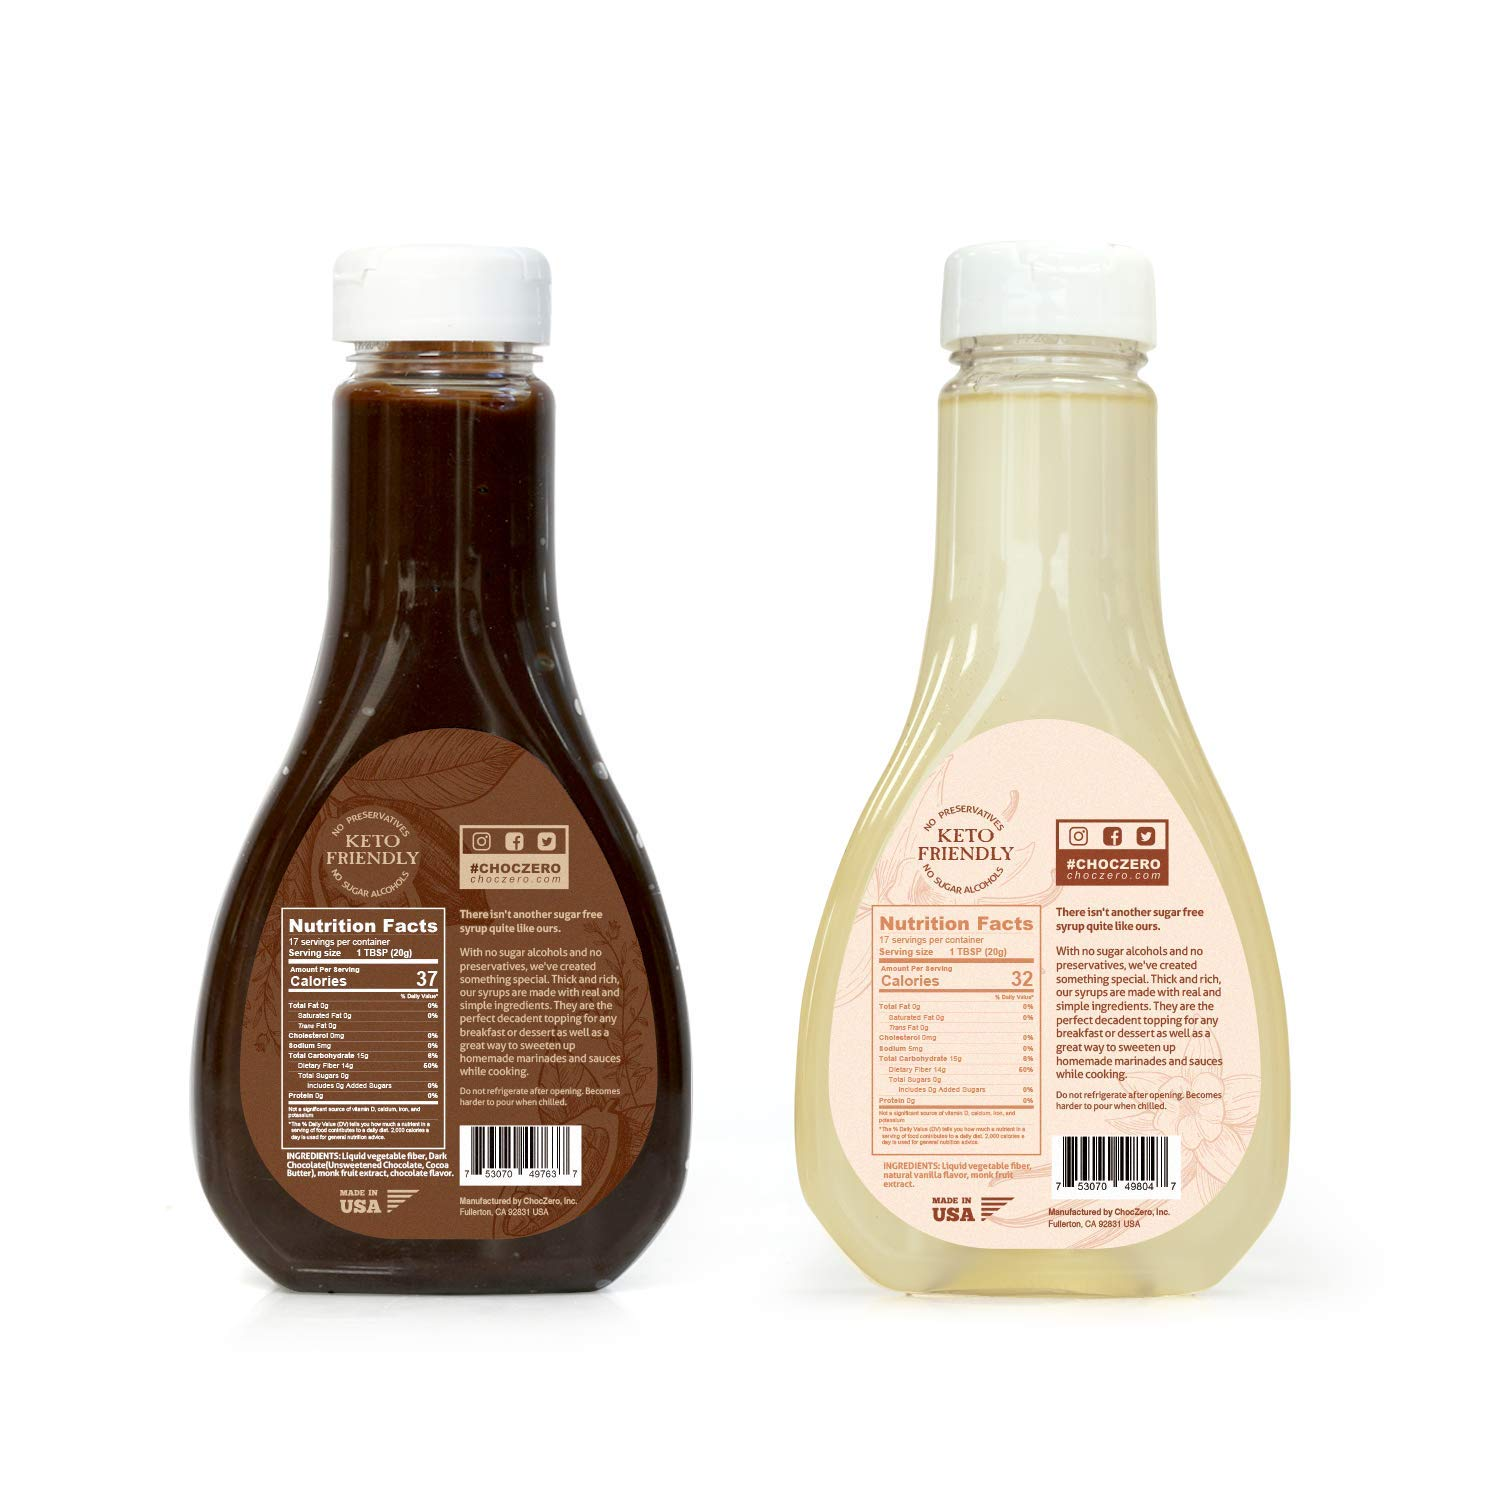 ChocZero's Chocolate and Vanilla Syrup. Sugar Free, Low Net Carb, No Preservatives. Gluten Free. No Sugar Alcohols. Dessert toppings and baking syrups for keto (2 bottles) by ChocZero (Image #2)